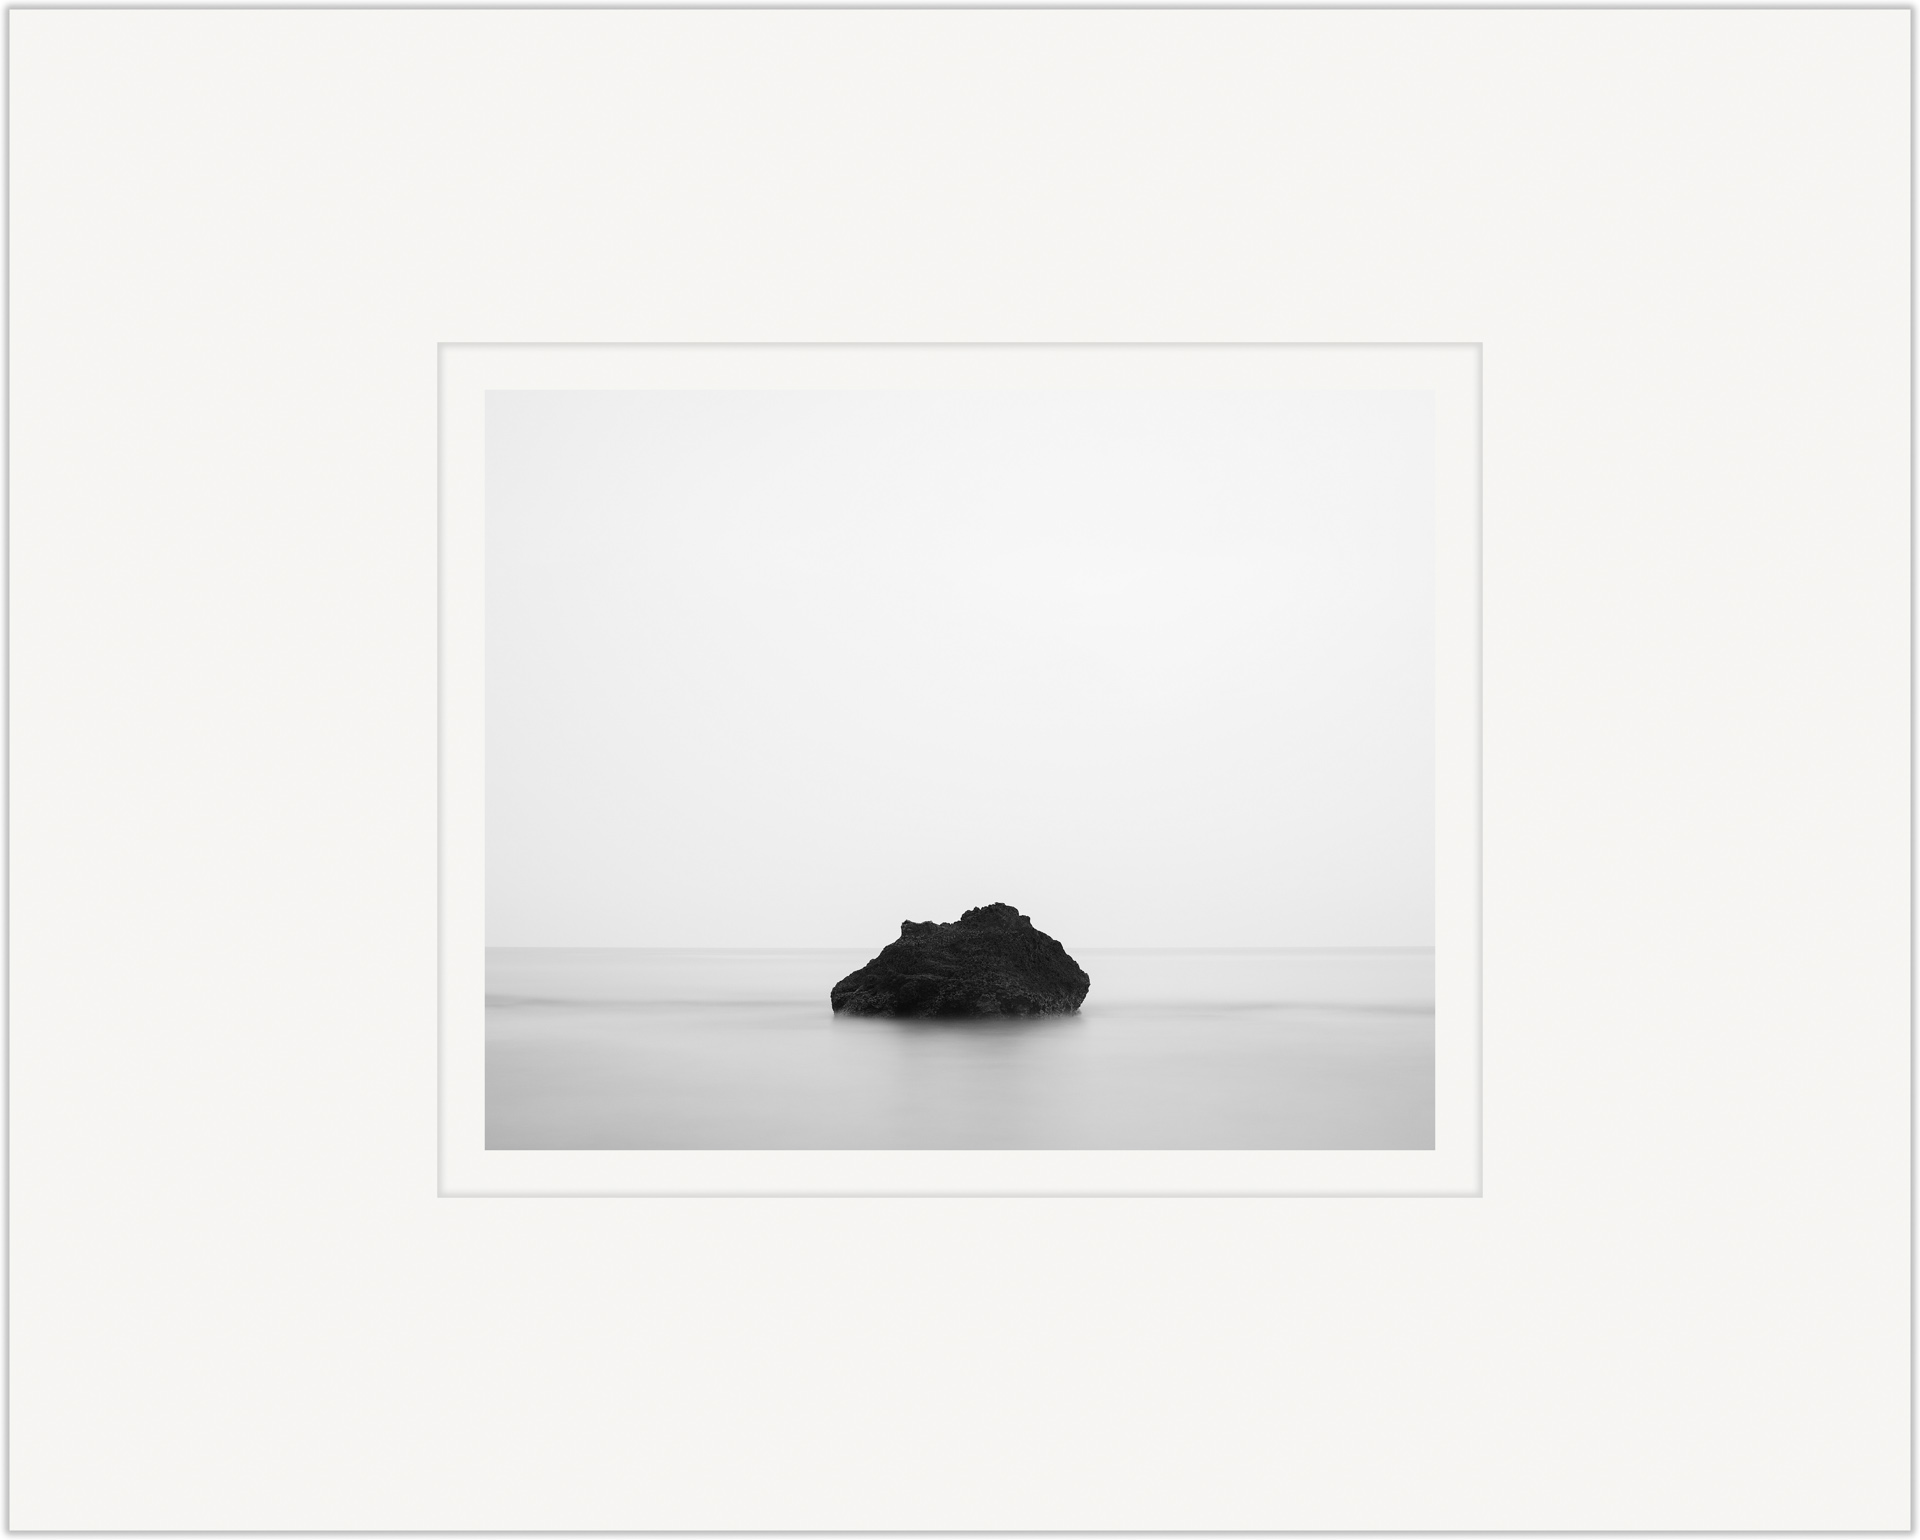 Hermit Rock   20cm x 25cm Photo Paper Limited Edition of 99   IDR 799,000